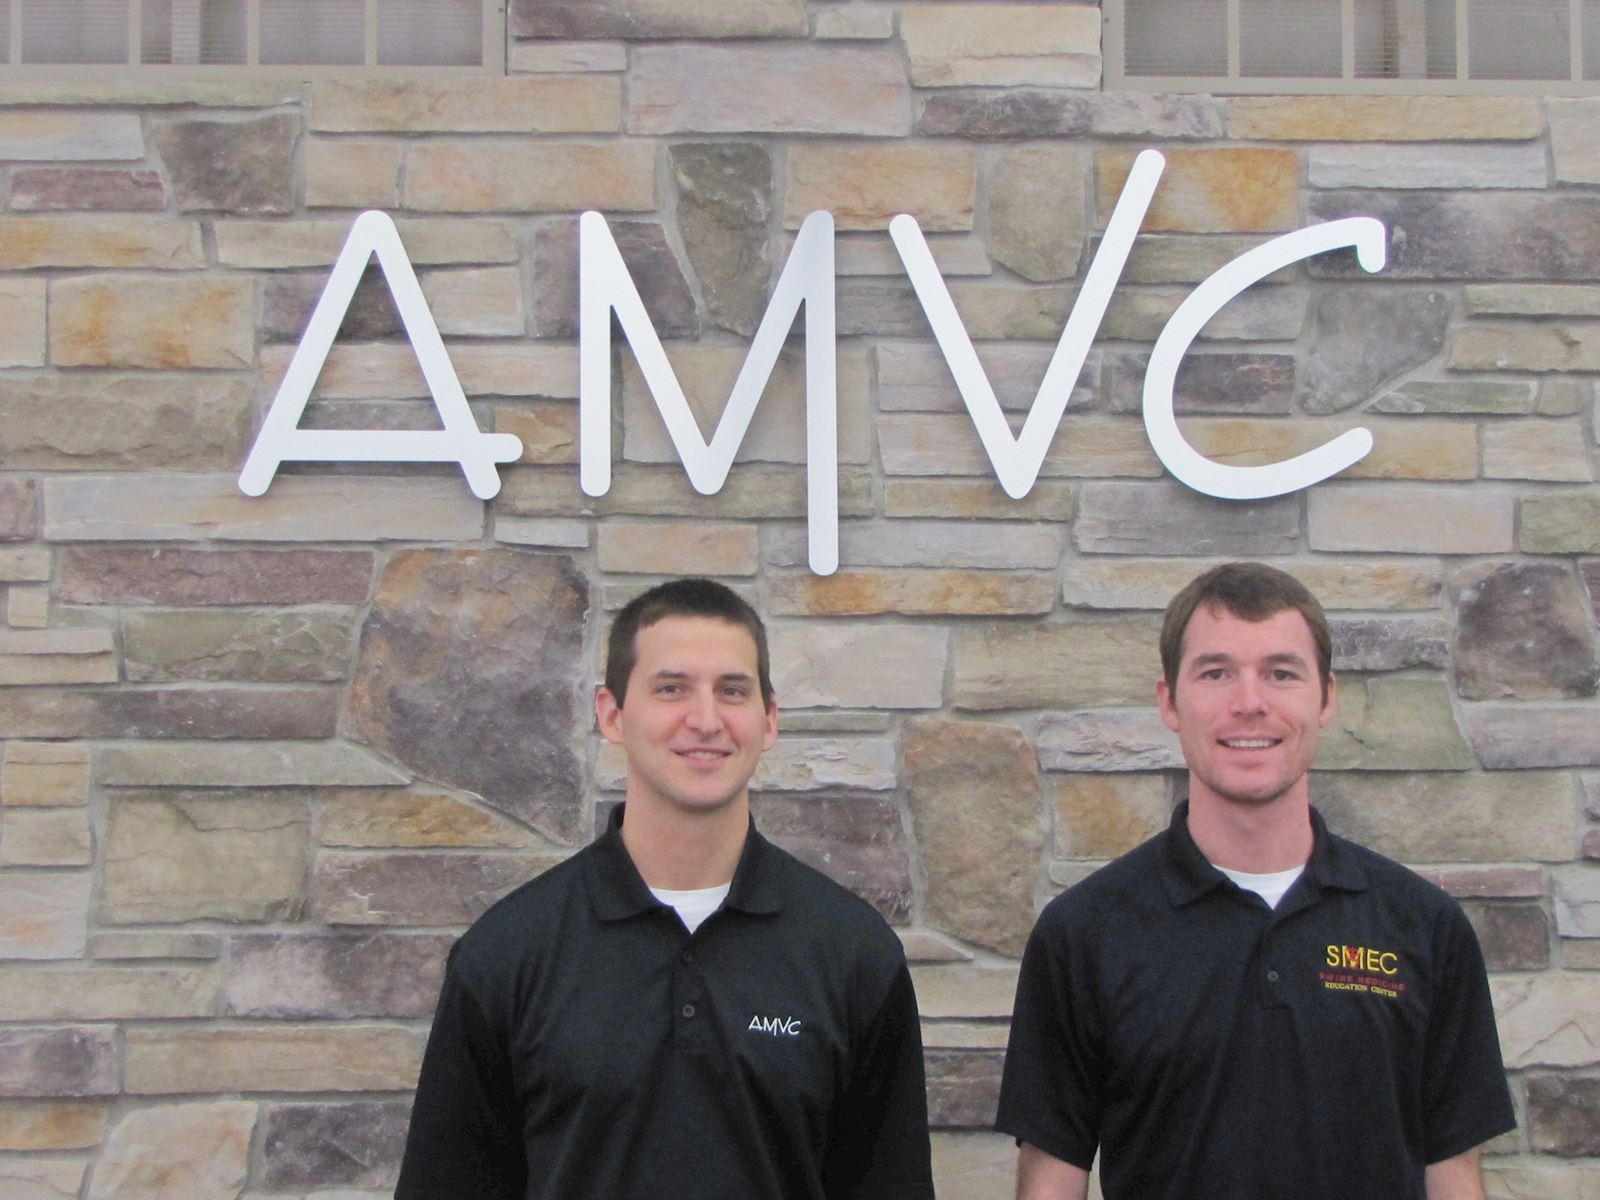 AMVC and SMEC enhance the future of the swine industry